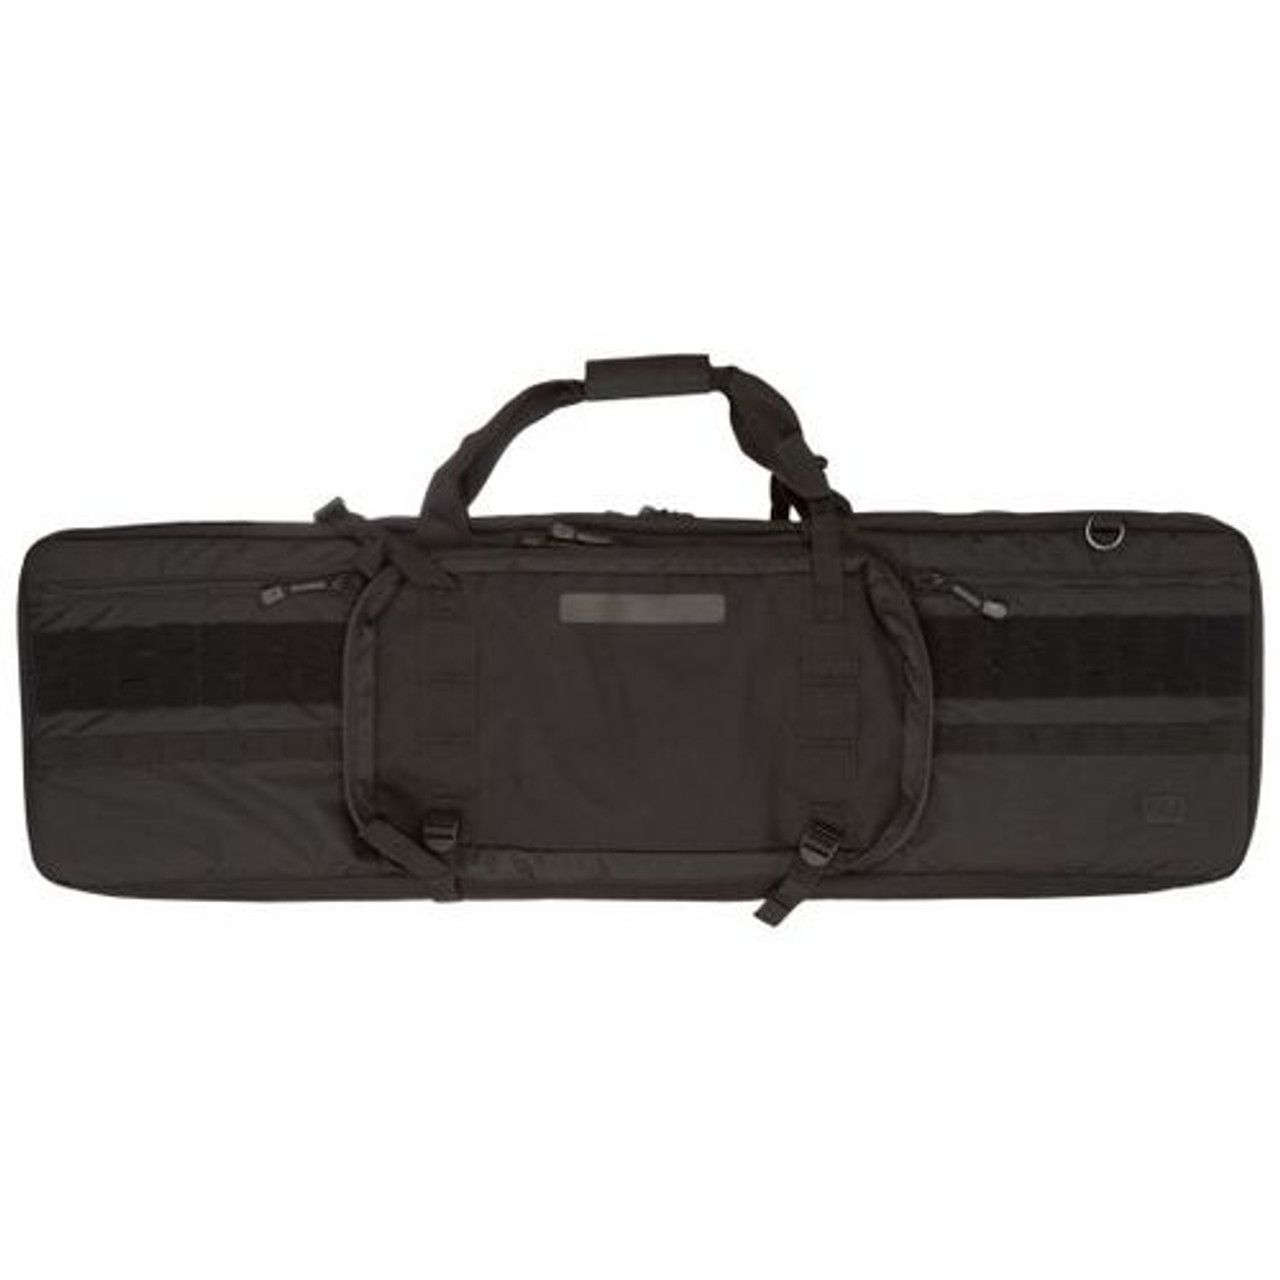 """5.11 Tactical VTAC® MK II 42"""" DOUBLE RIFLE SOFT CASE and carry bag, 1050D nylon exterior, 500D ripstop interior, Integrated padded divider, Compression straps, Fully customizable web and loop platforms, 56222"""